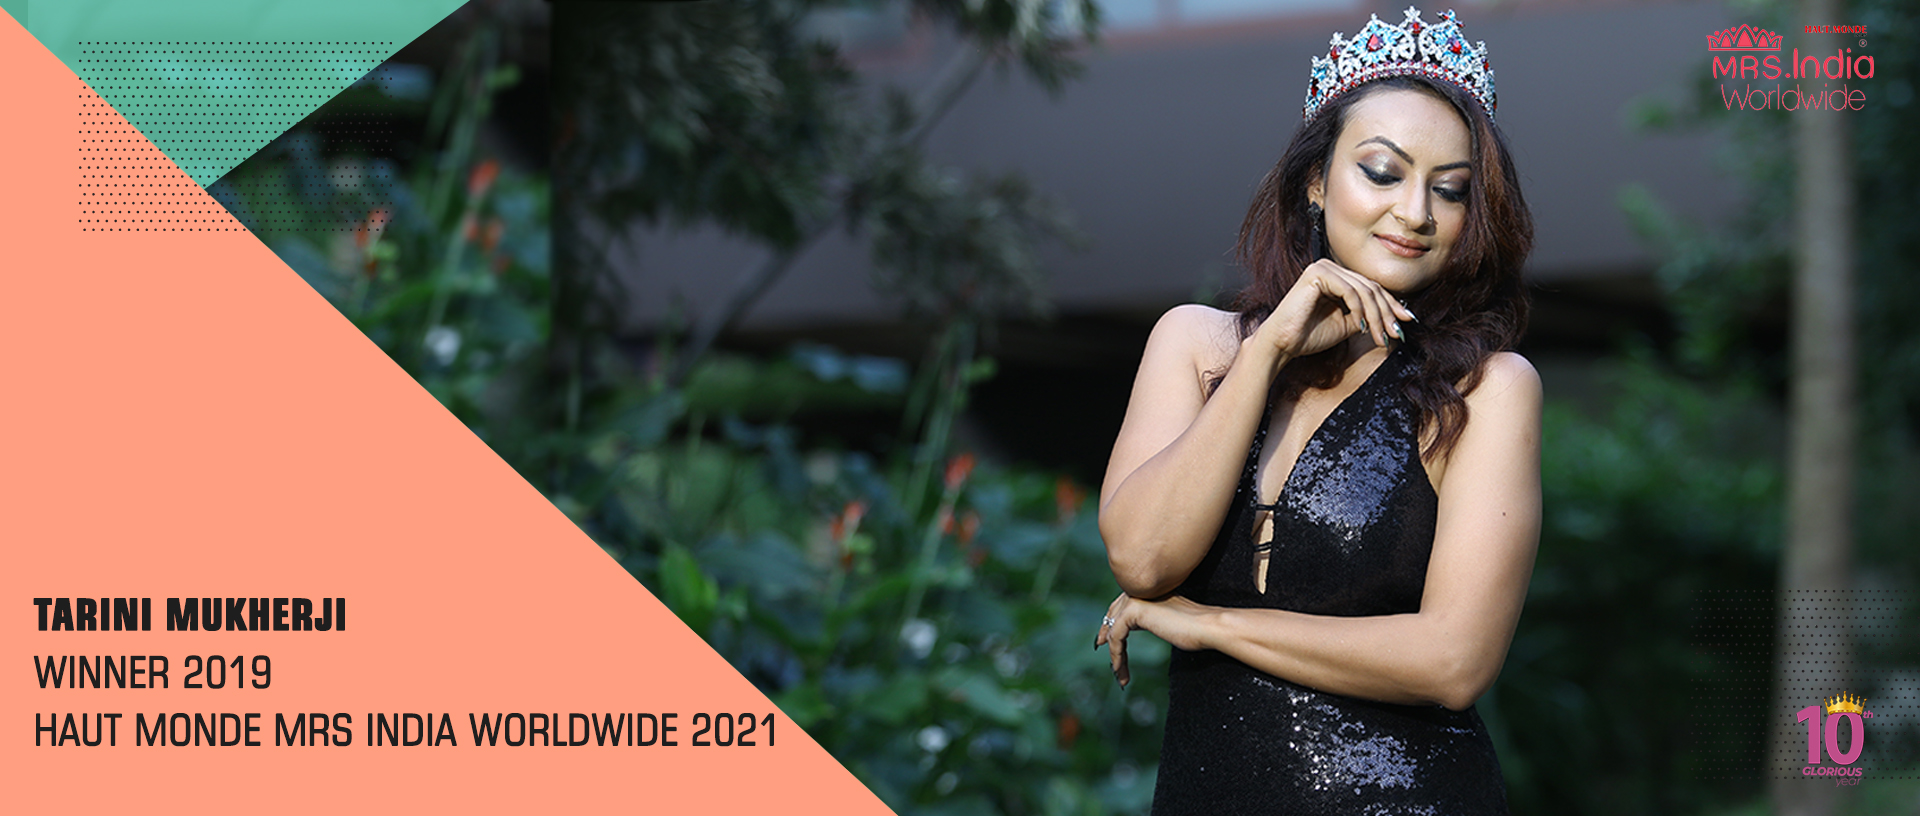 Mrs India Worldwide about